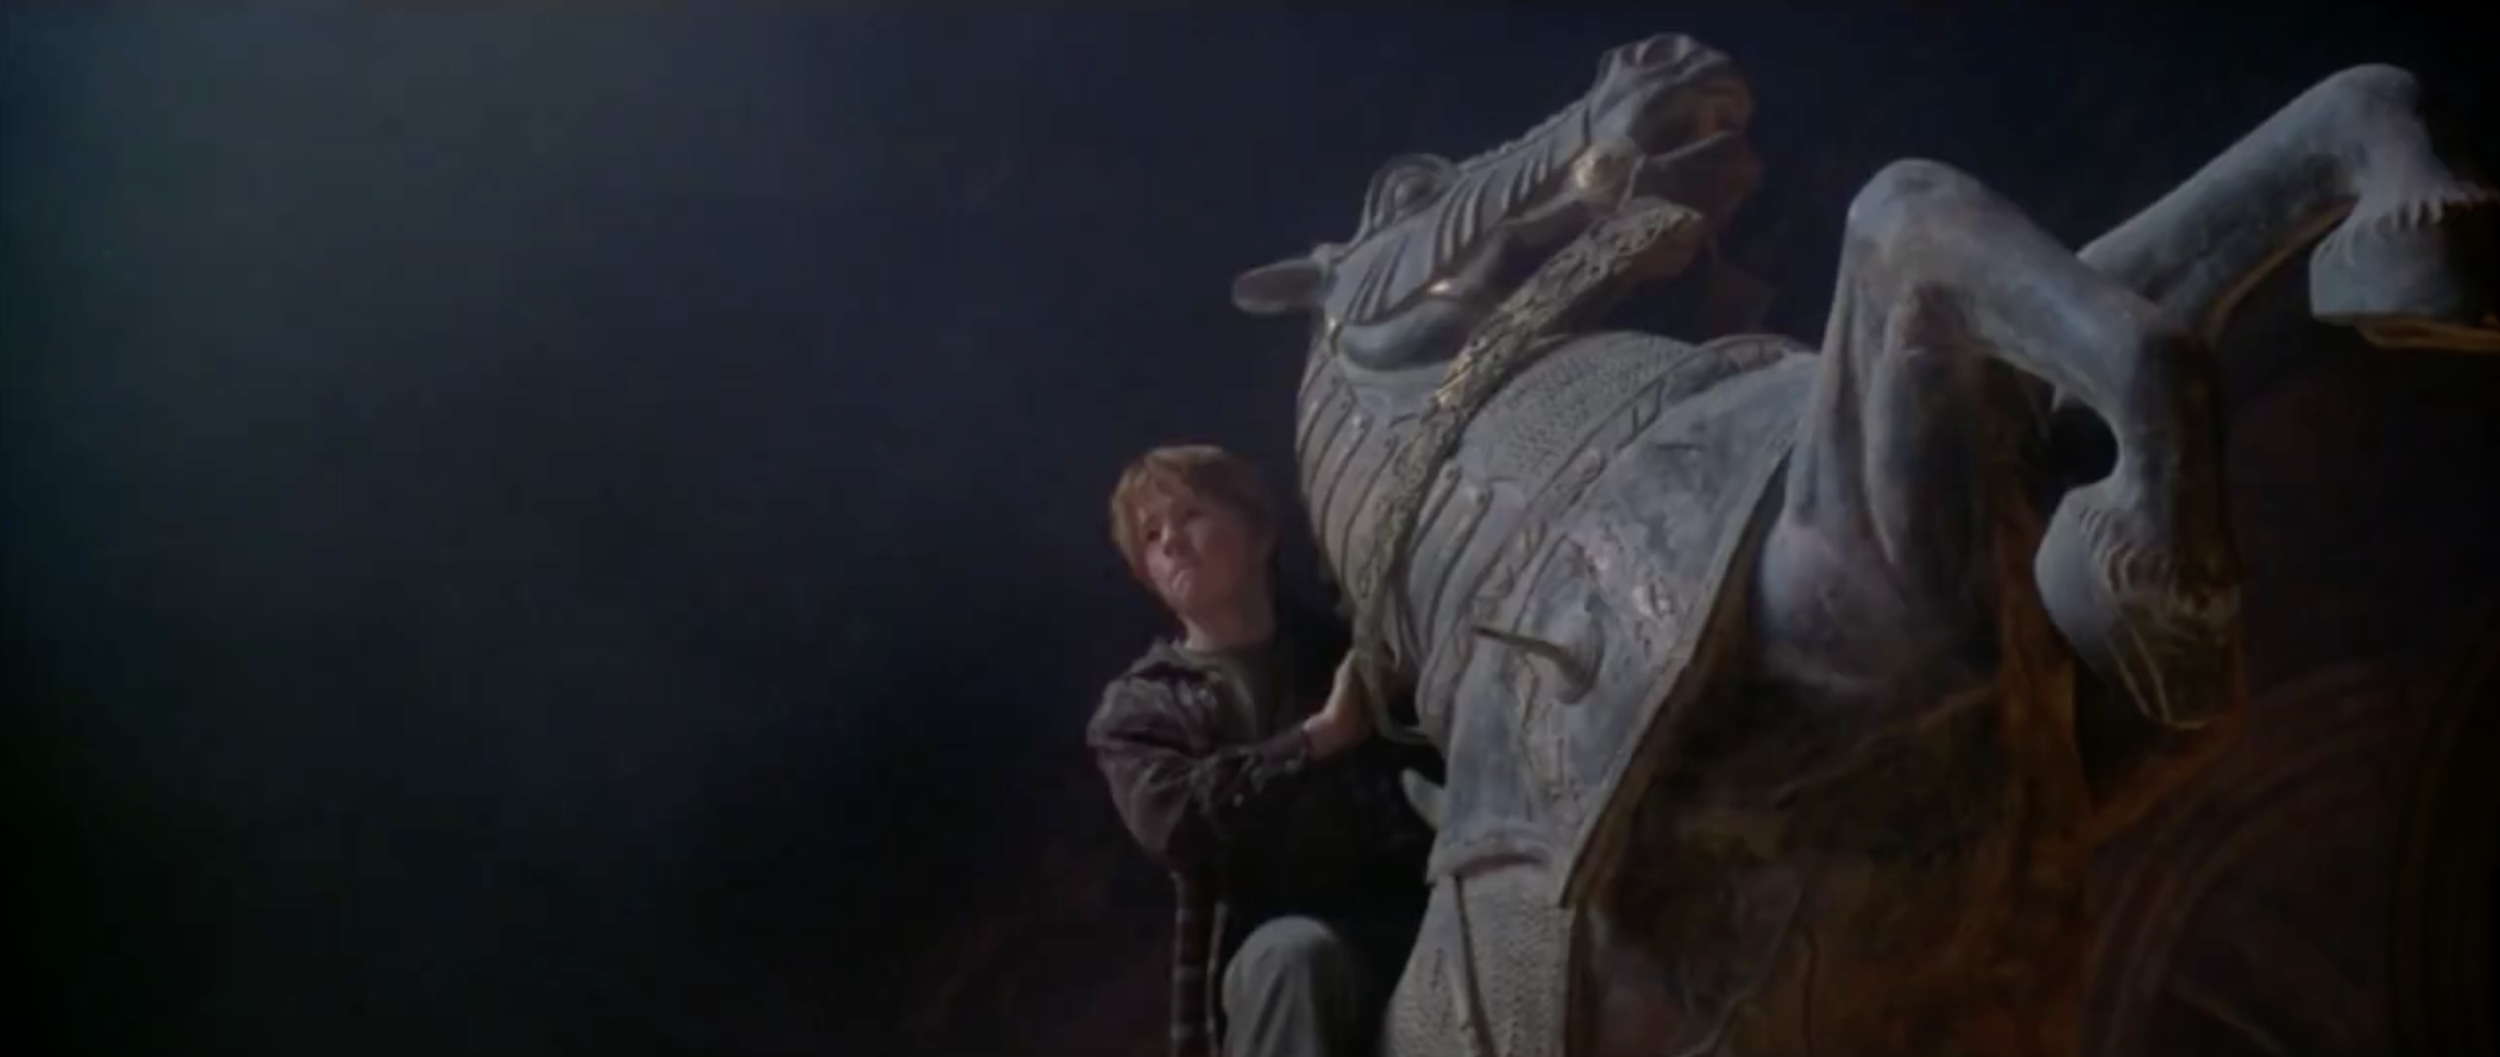 This is the iconic scene where Ron Weasley's stuntman is on the giant knight piece :P